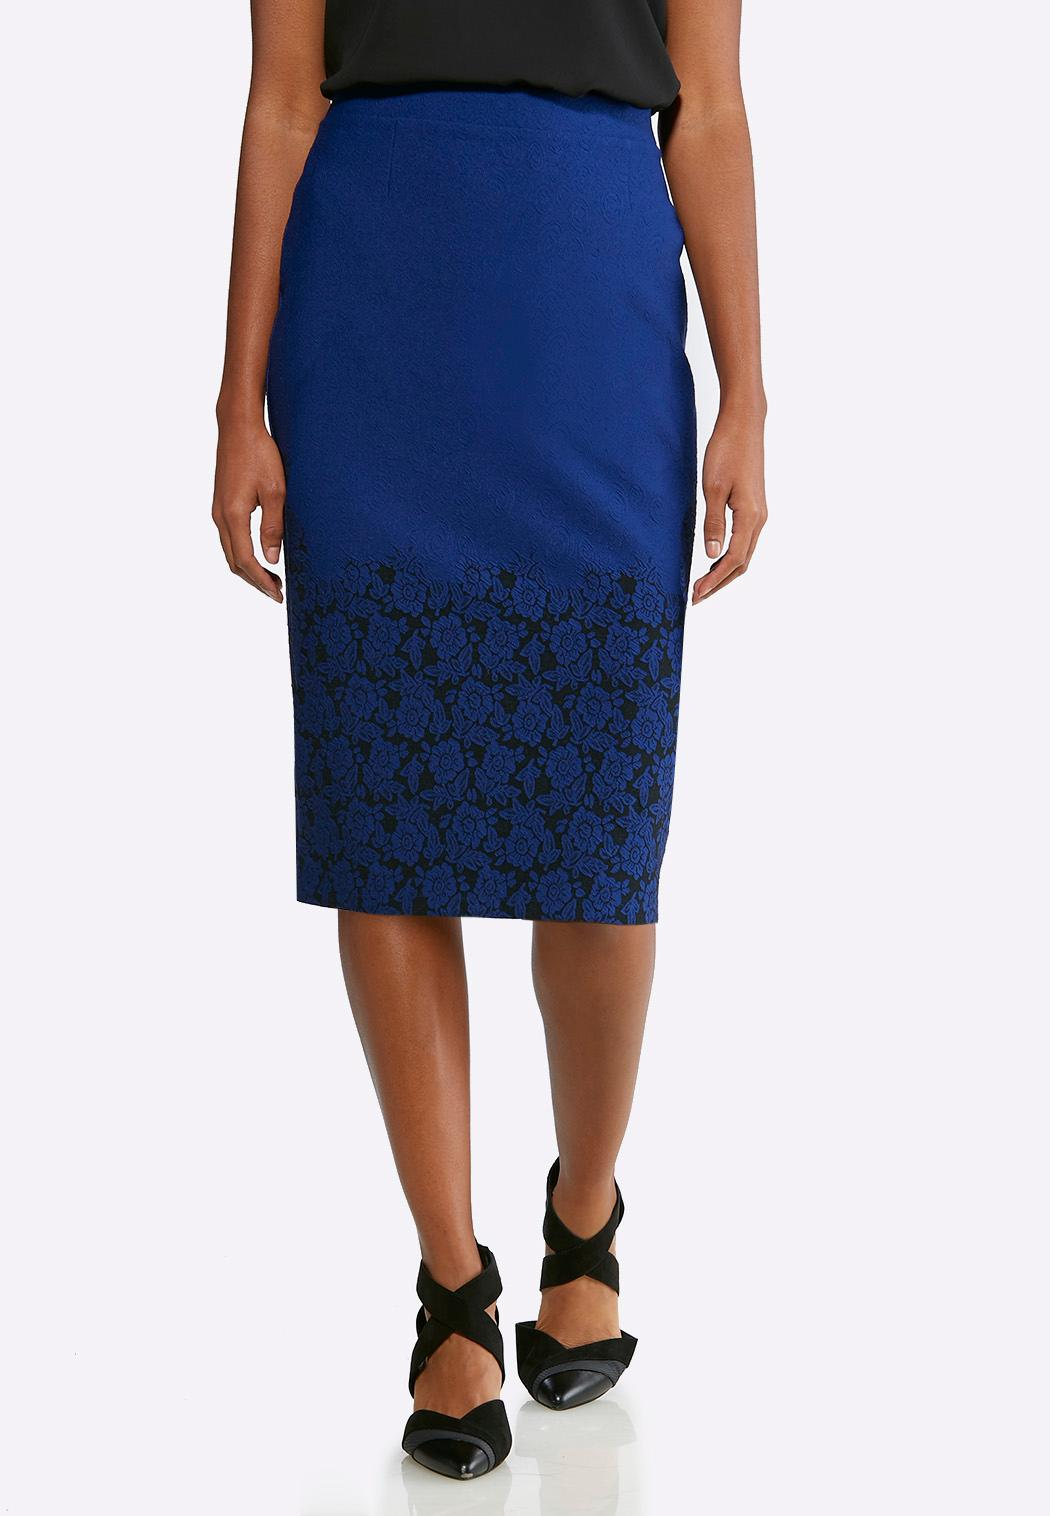 b9d4e74cfdb Plus Size Jacquard Floral Pencil Skirt Below The Knee Cato Fashions